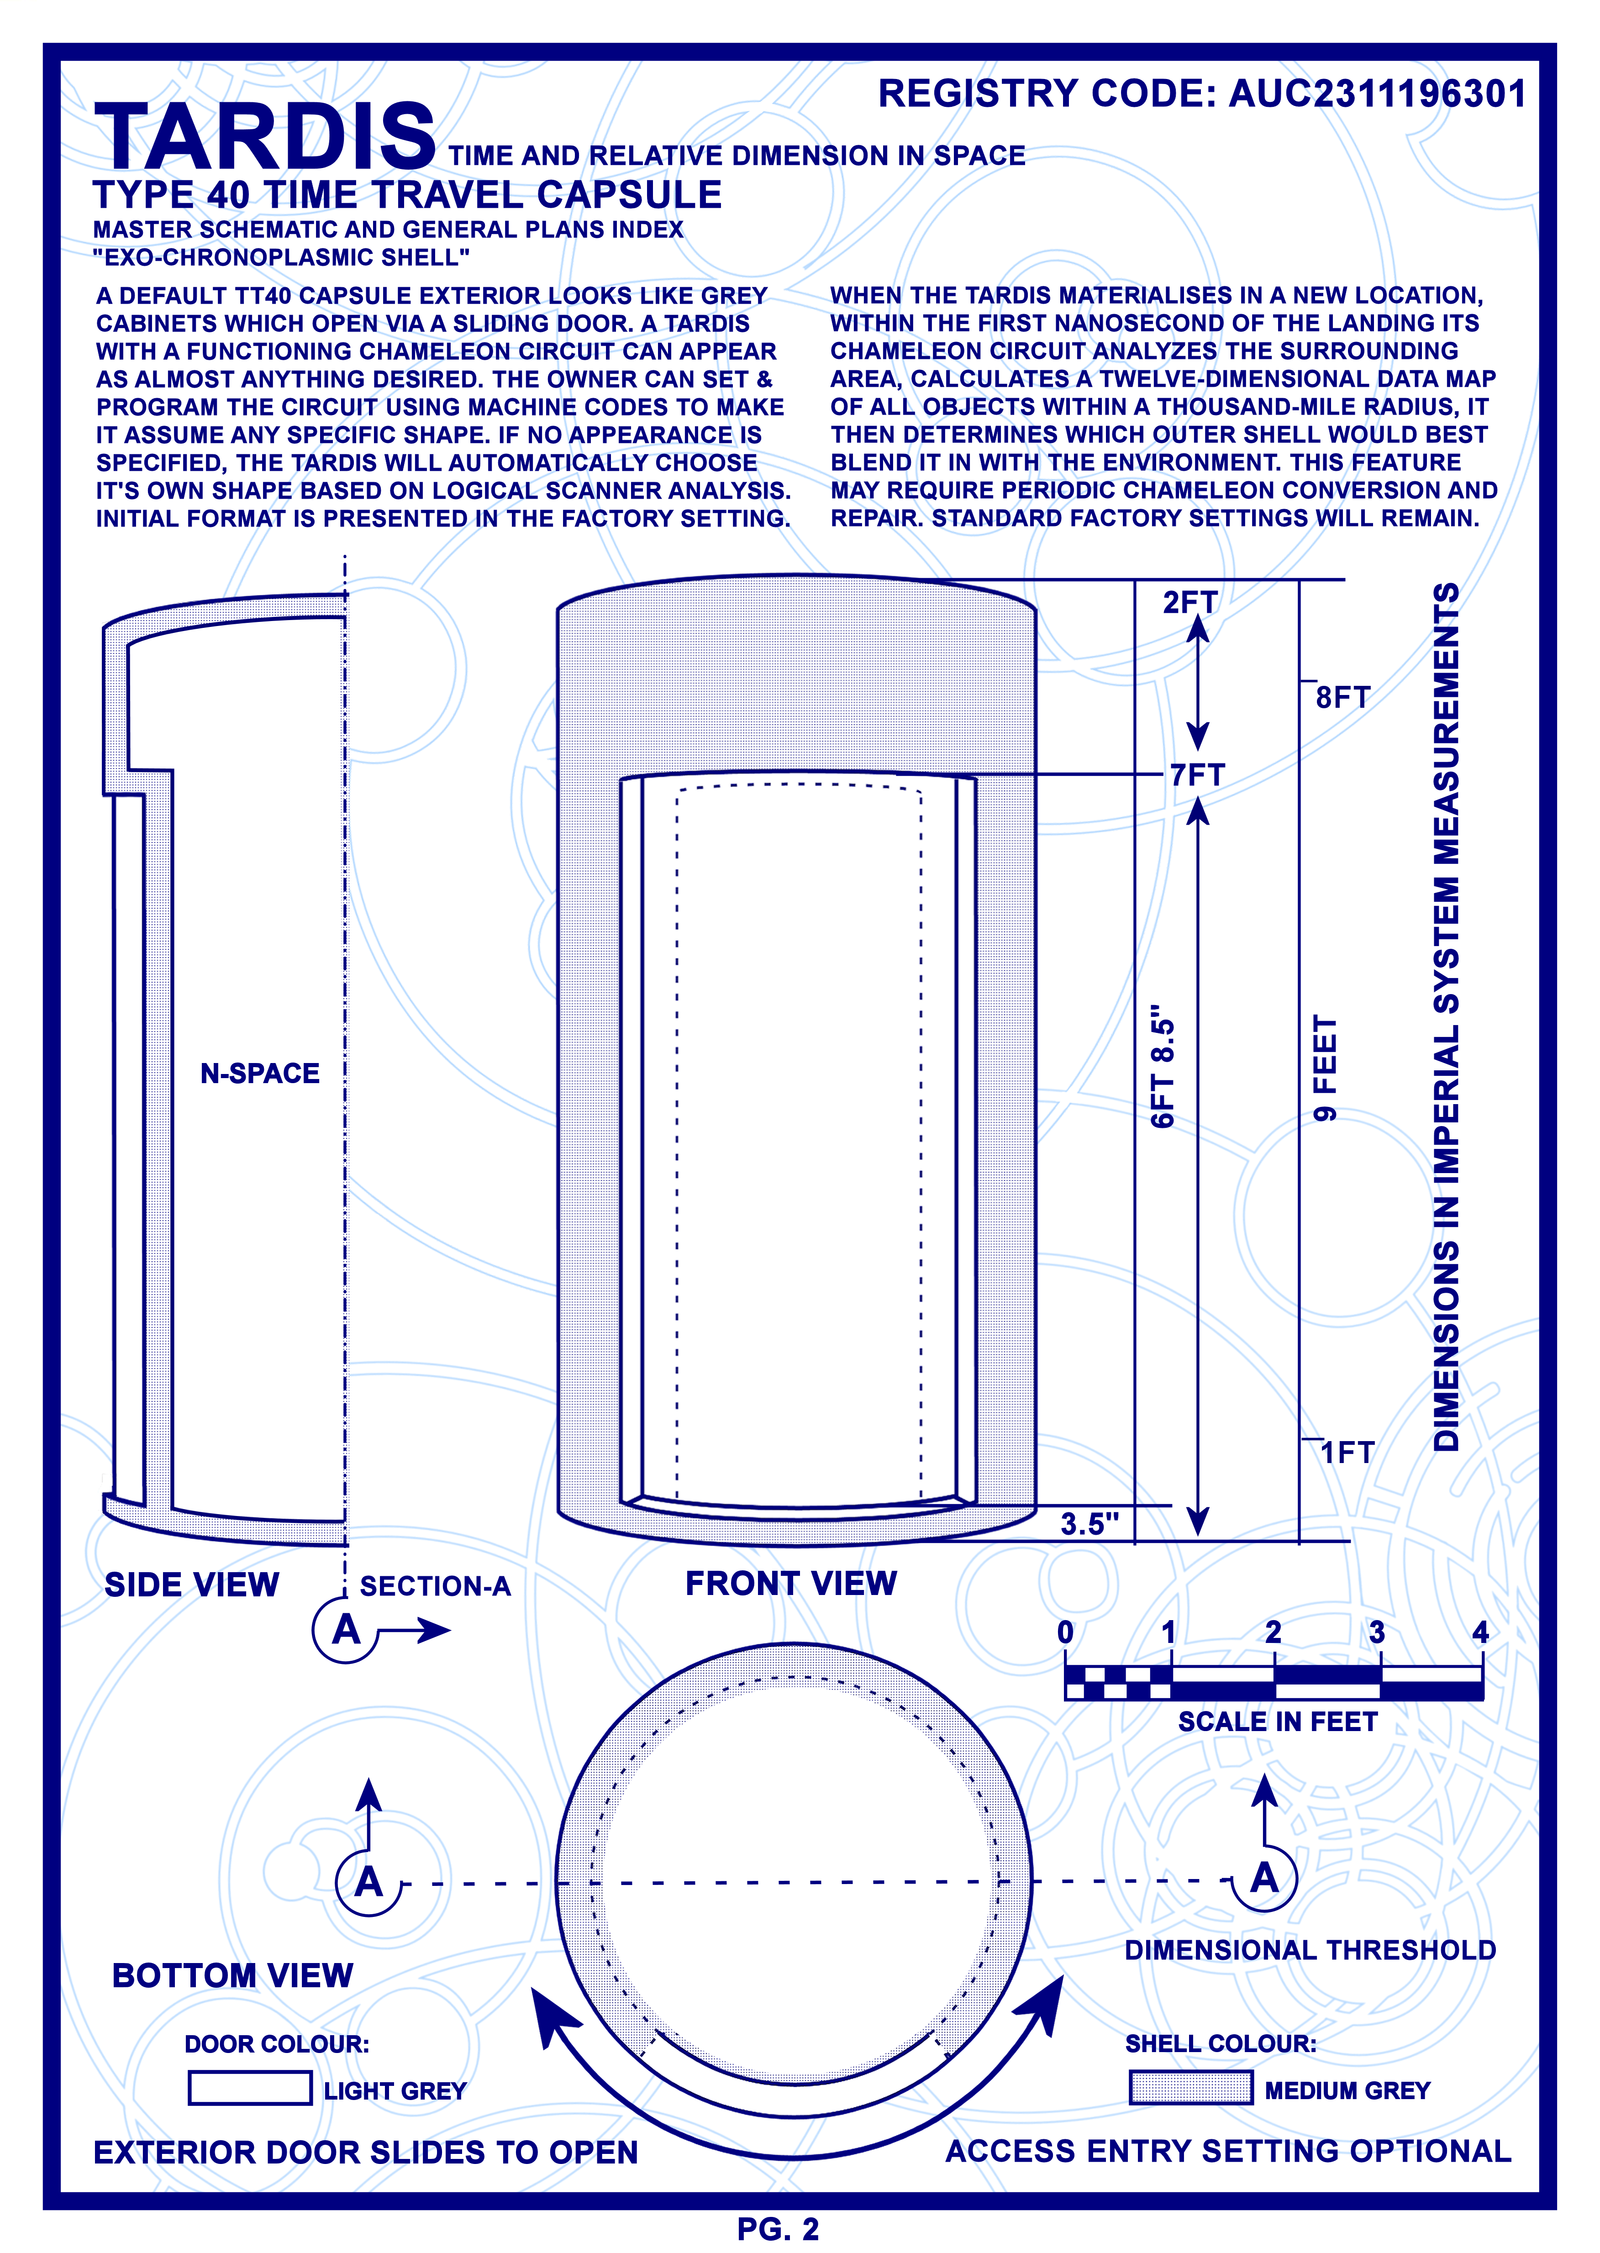 Pin by rodney kelly on tardis pinterest tardis fyi skipping page 3 for now as it is a cutaway of the console and tardis master schematics page 2 final malvernweather Images